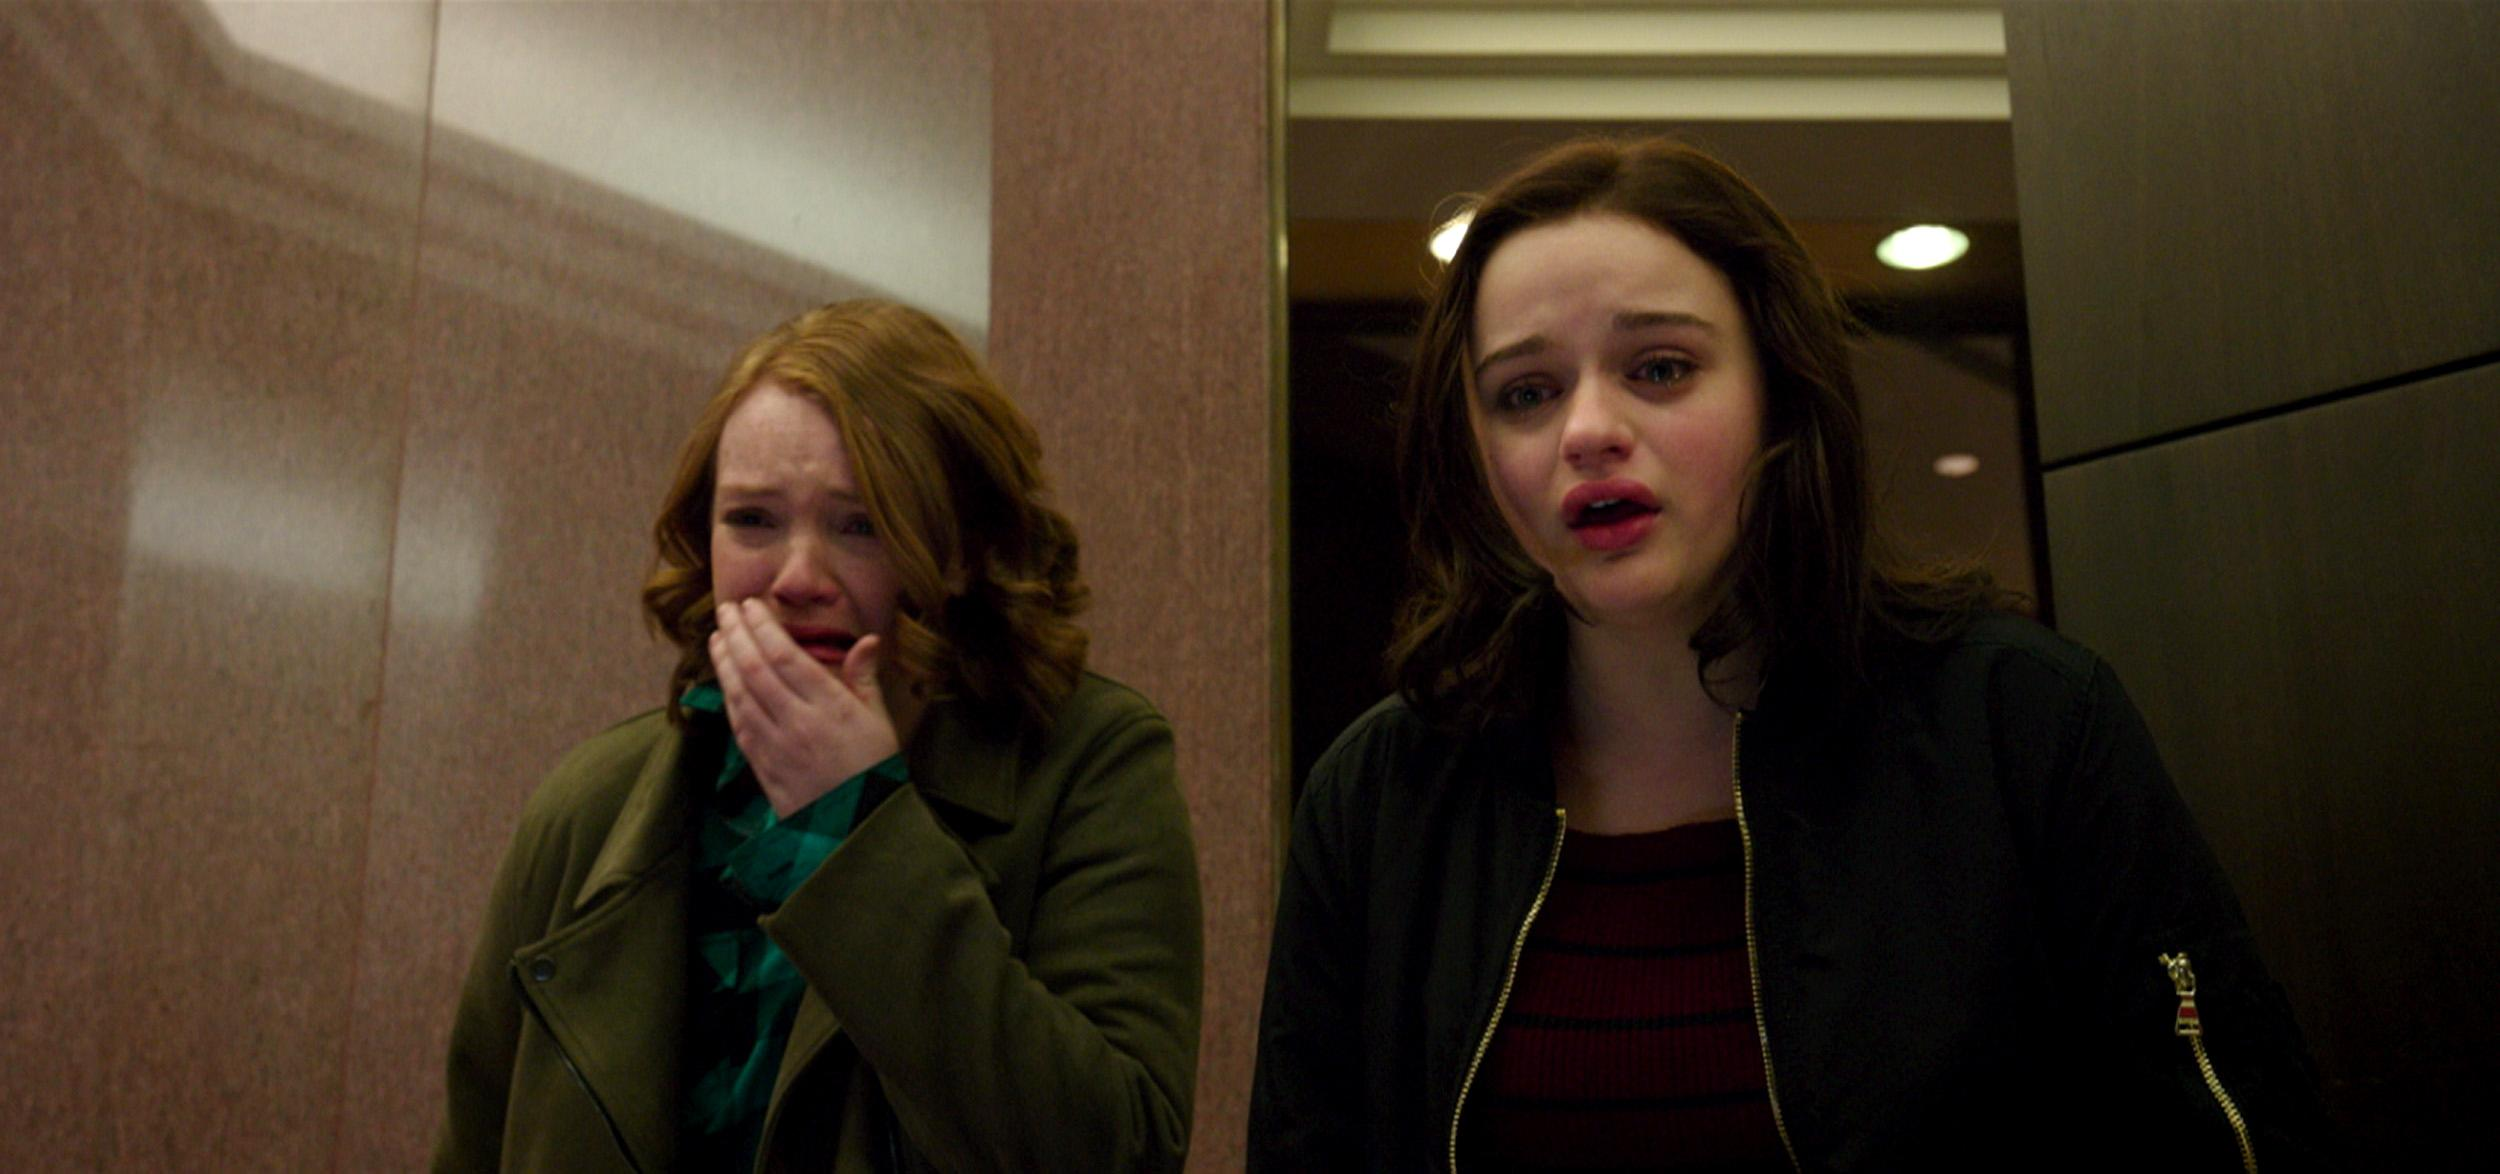 Shannon Purser stars as June and Joey King as Claire in WISH UPON, a Broad Green Pictures release. Credit: Broad Green Pictures